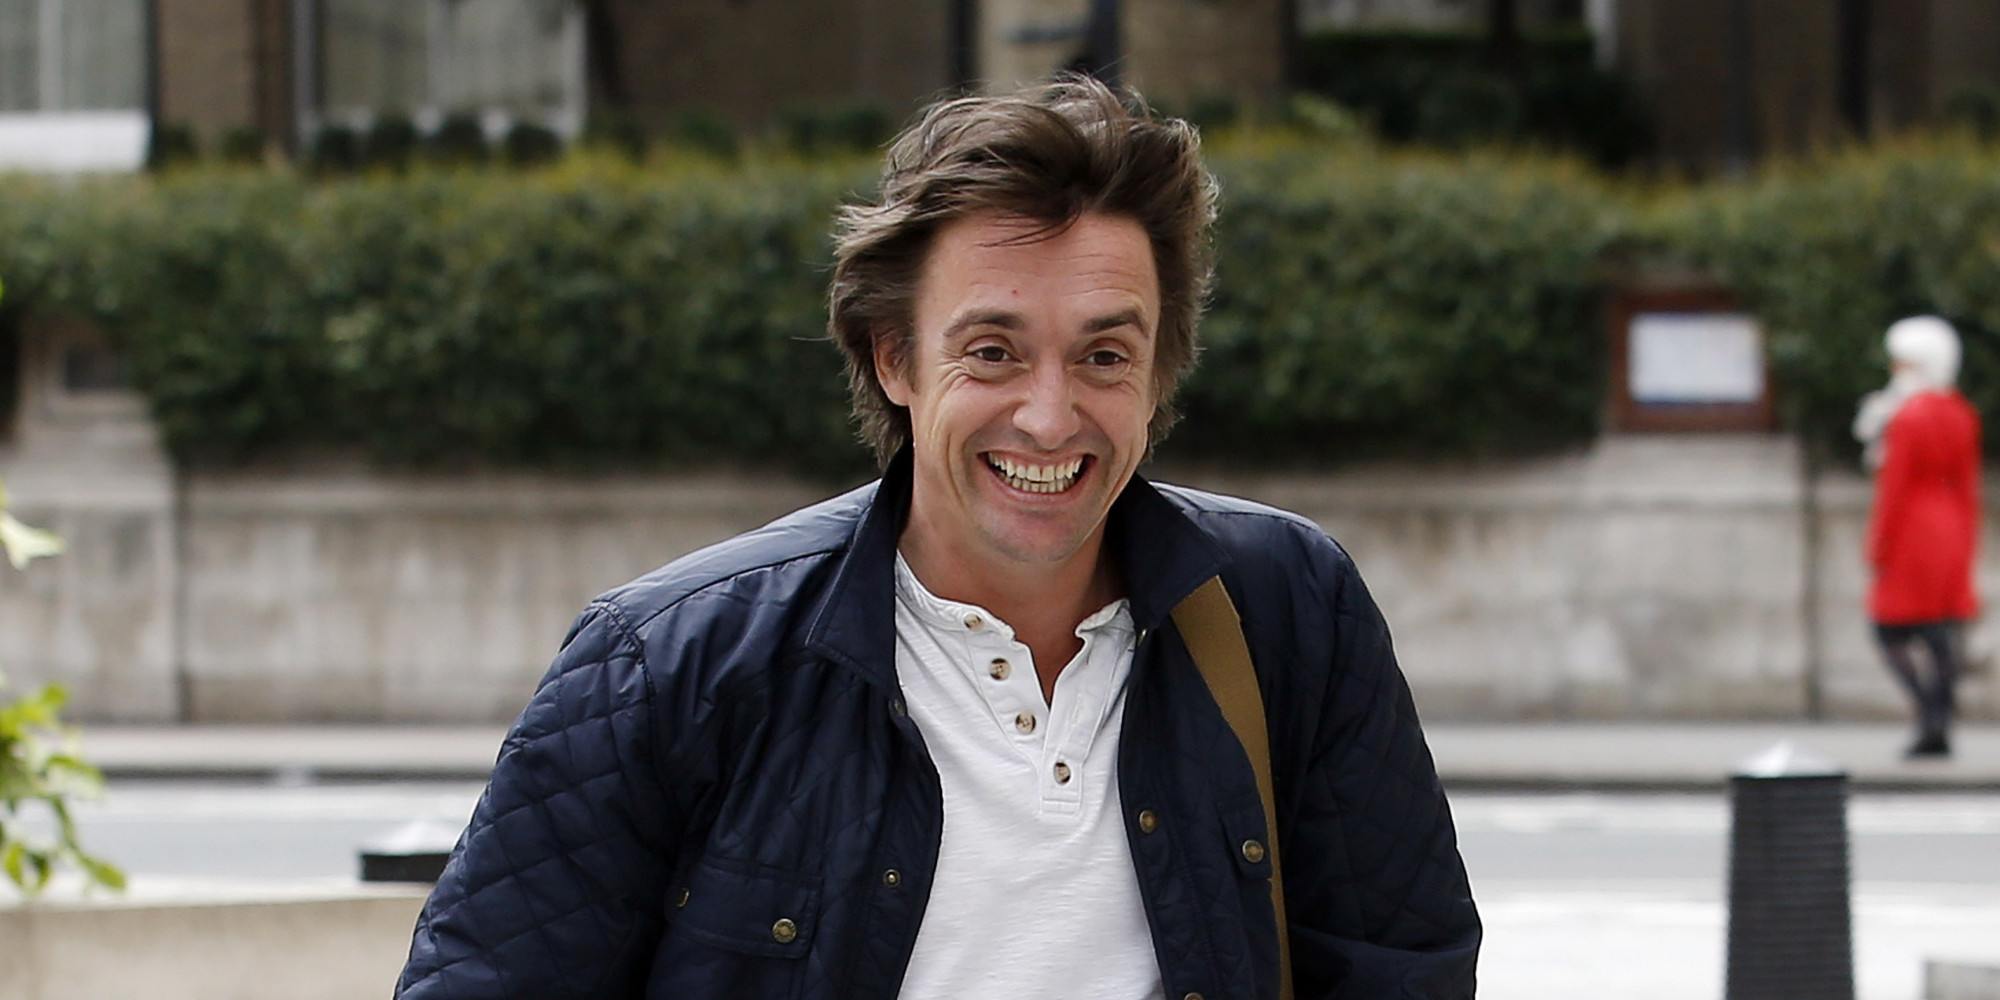 top gear 39 richard hammond confirms plan to continue working with jeremy clarkson and james may. Black Bedroom Furniture Sets. Home Design Ideas